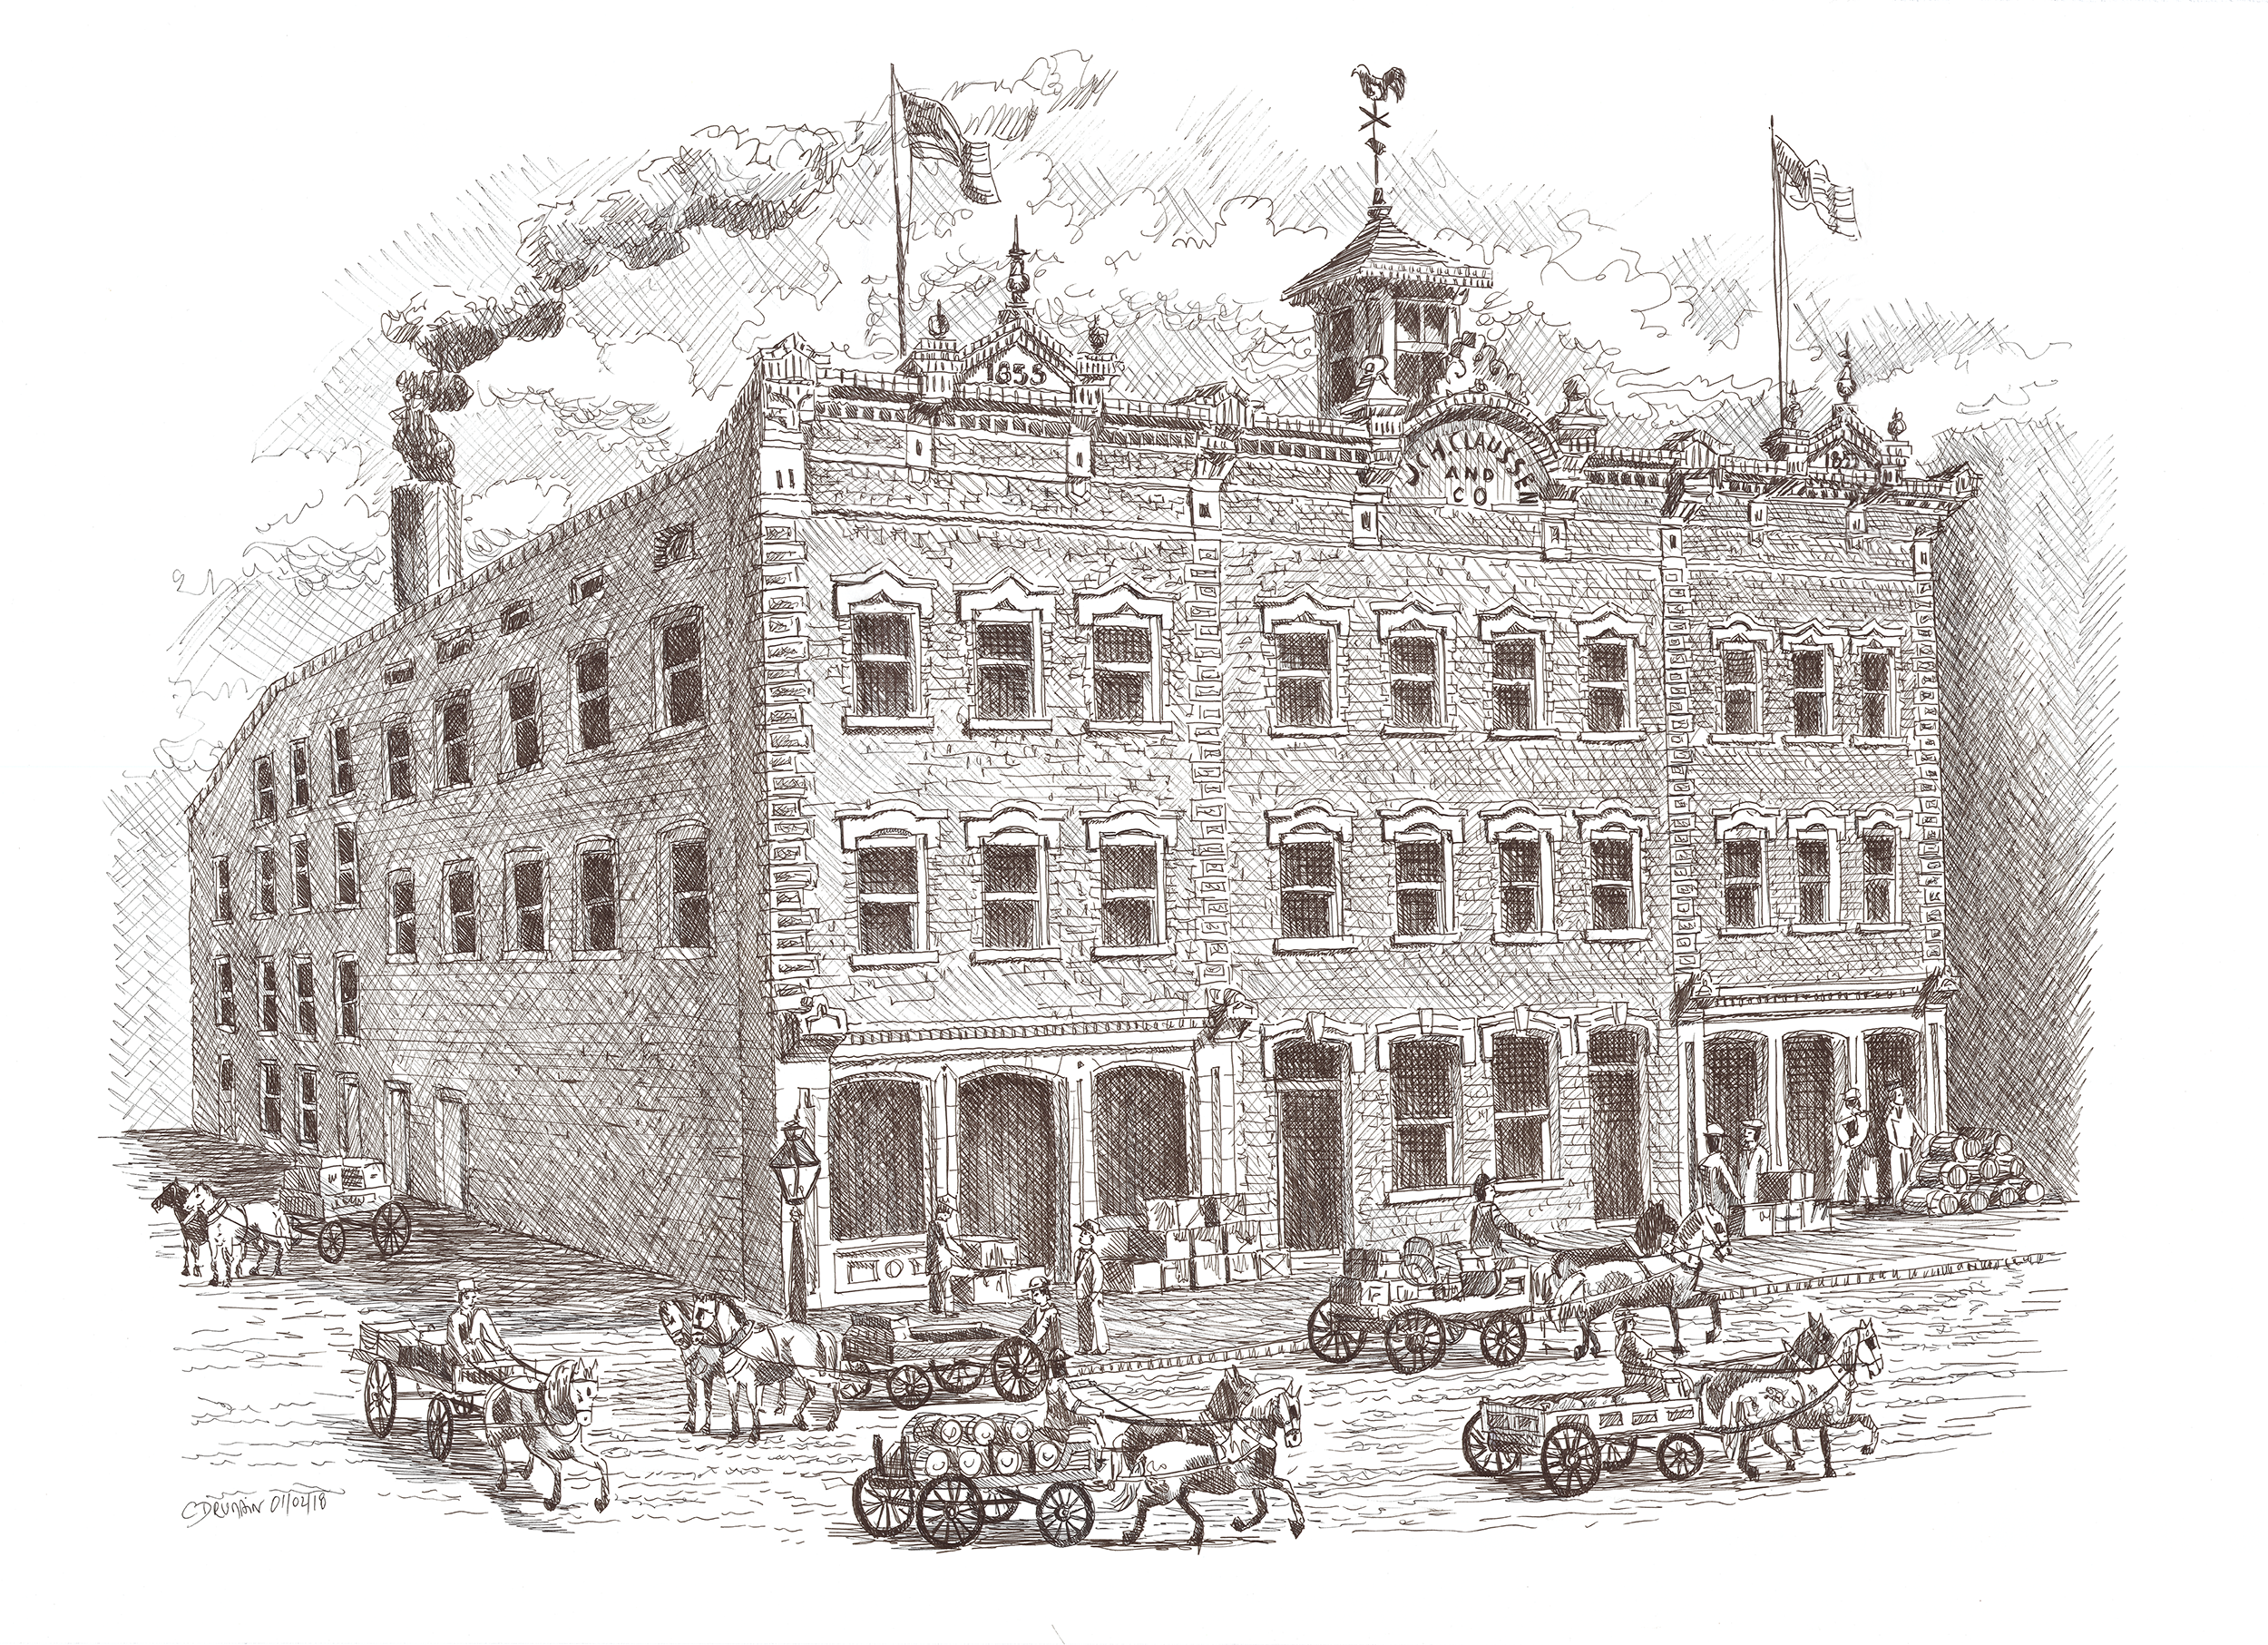 The J.C.H. Claussen building, circa 1856. Illustration by Christophe Drumain.